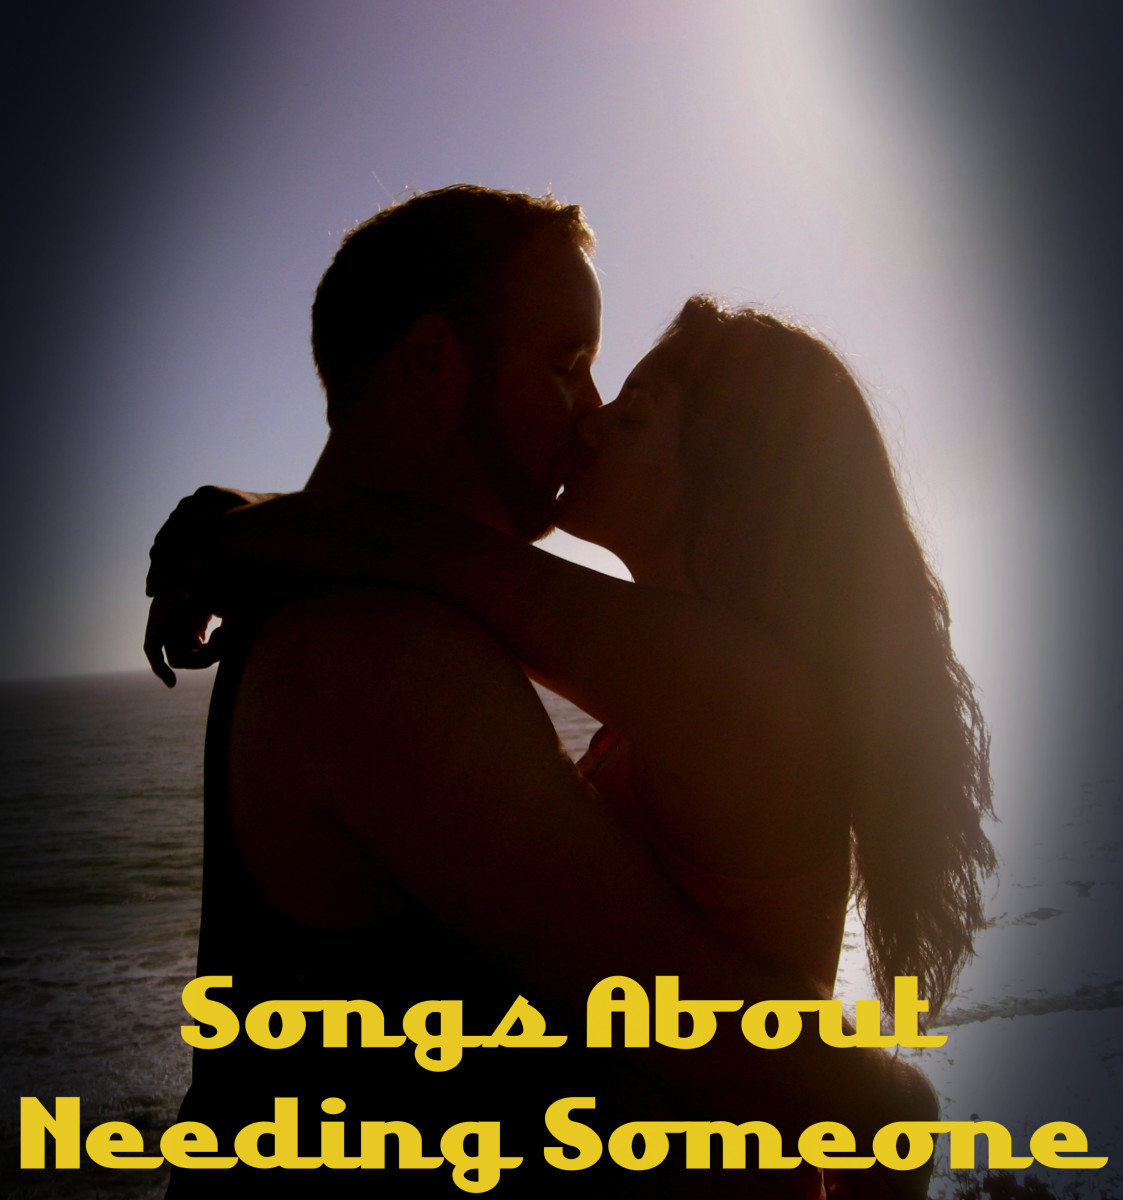 54 Songs About Needing Someone